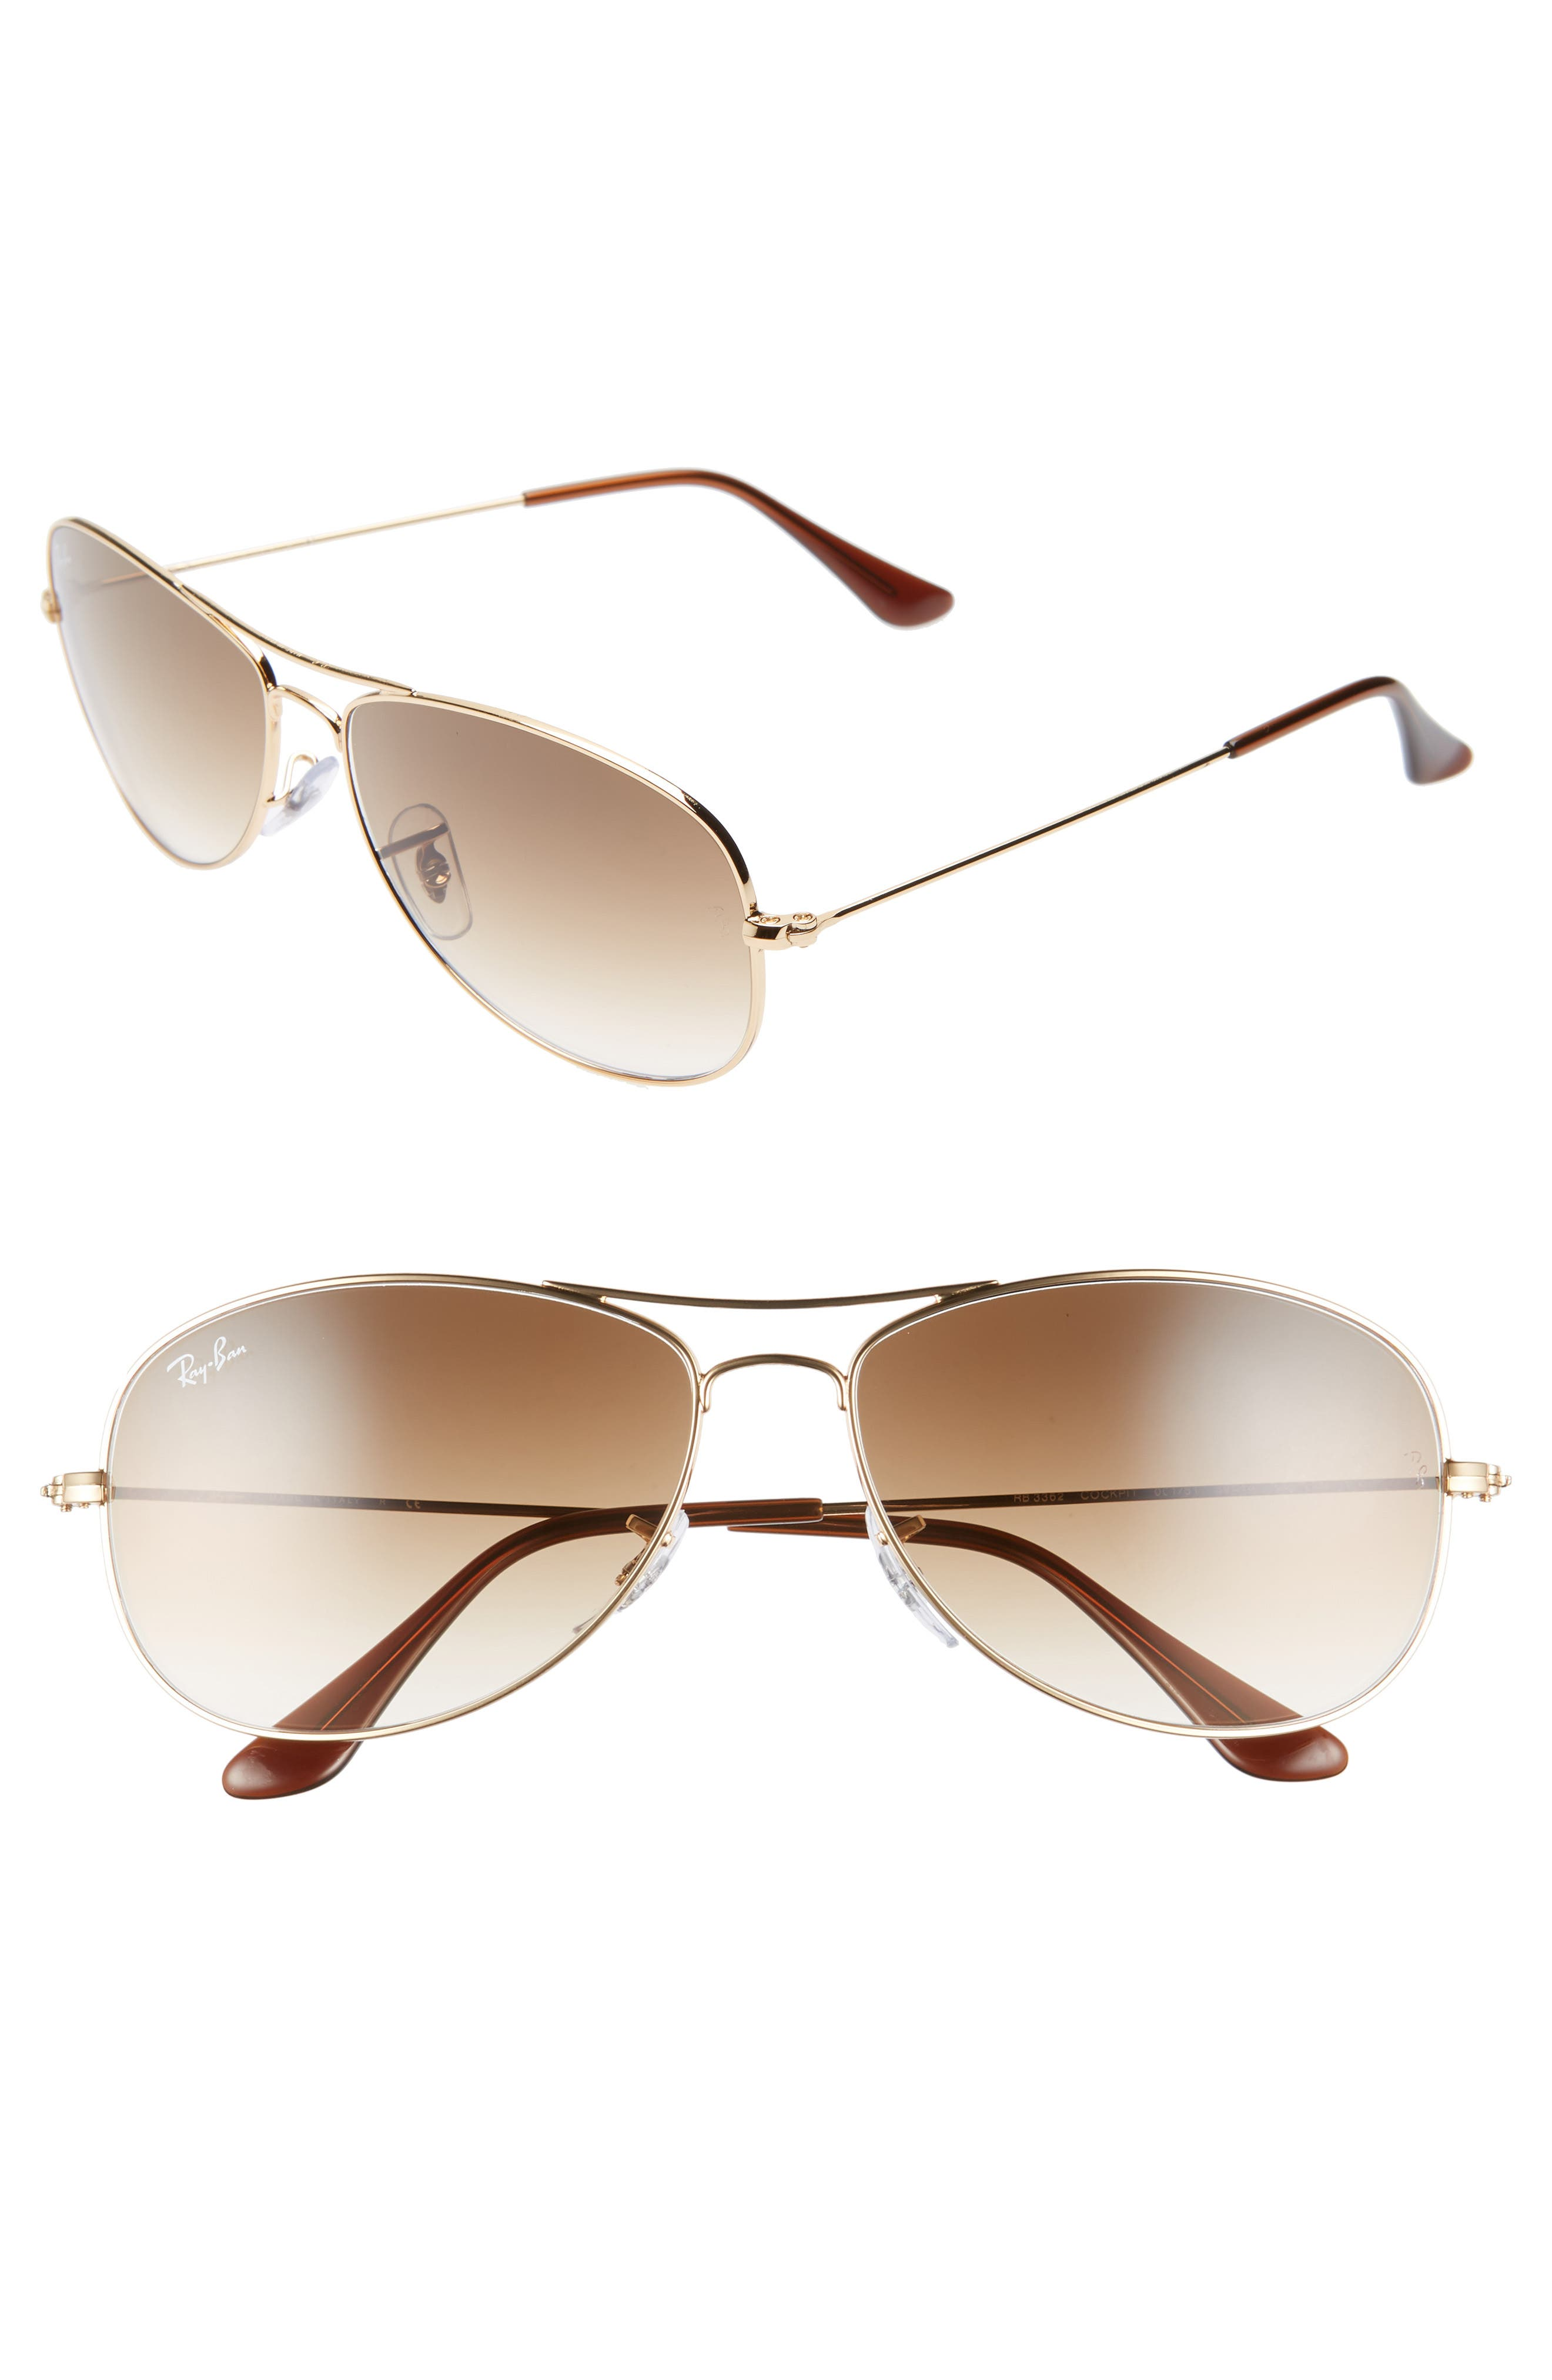 RAY-BAN, New Classic Aviator 59mm Sunglasses, Main thumbnail 1, color, GOLD/ BROWN GRADIENT